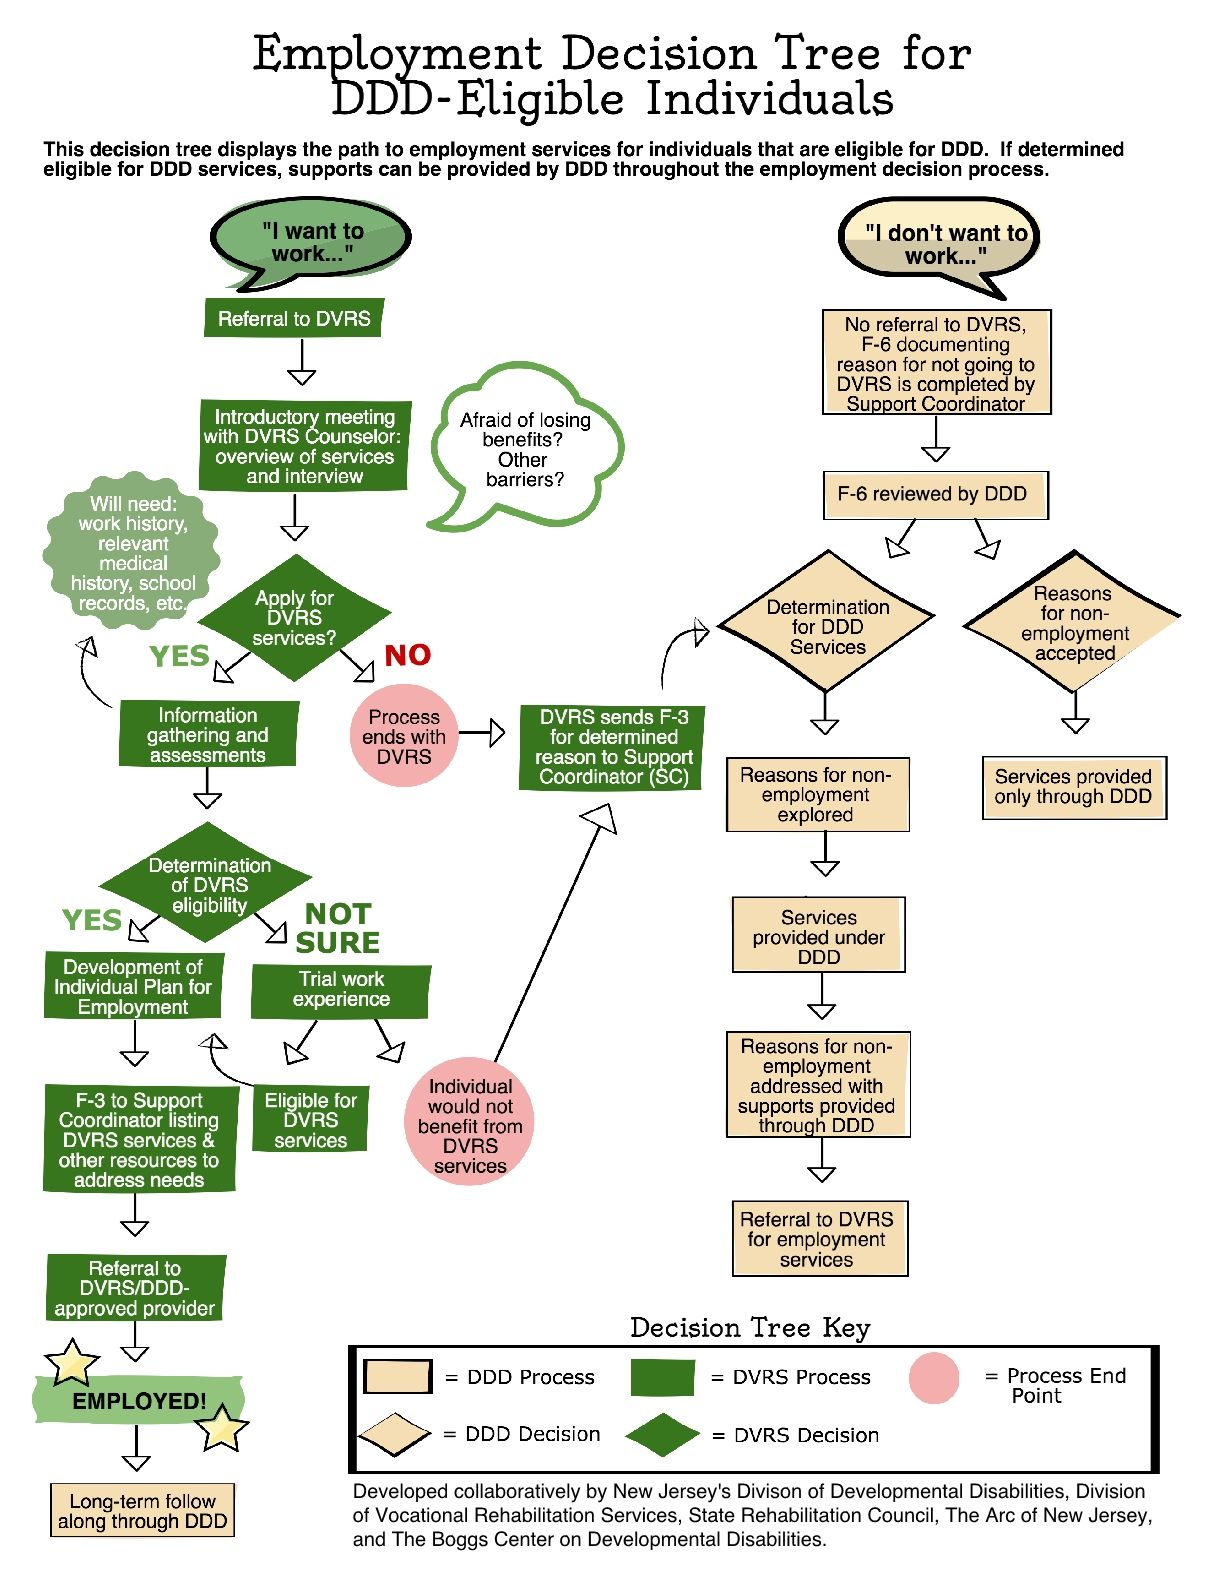 Employment Decision Tree for DDD Eligible Individuals